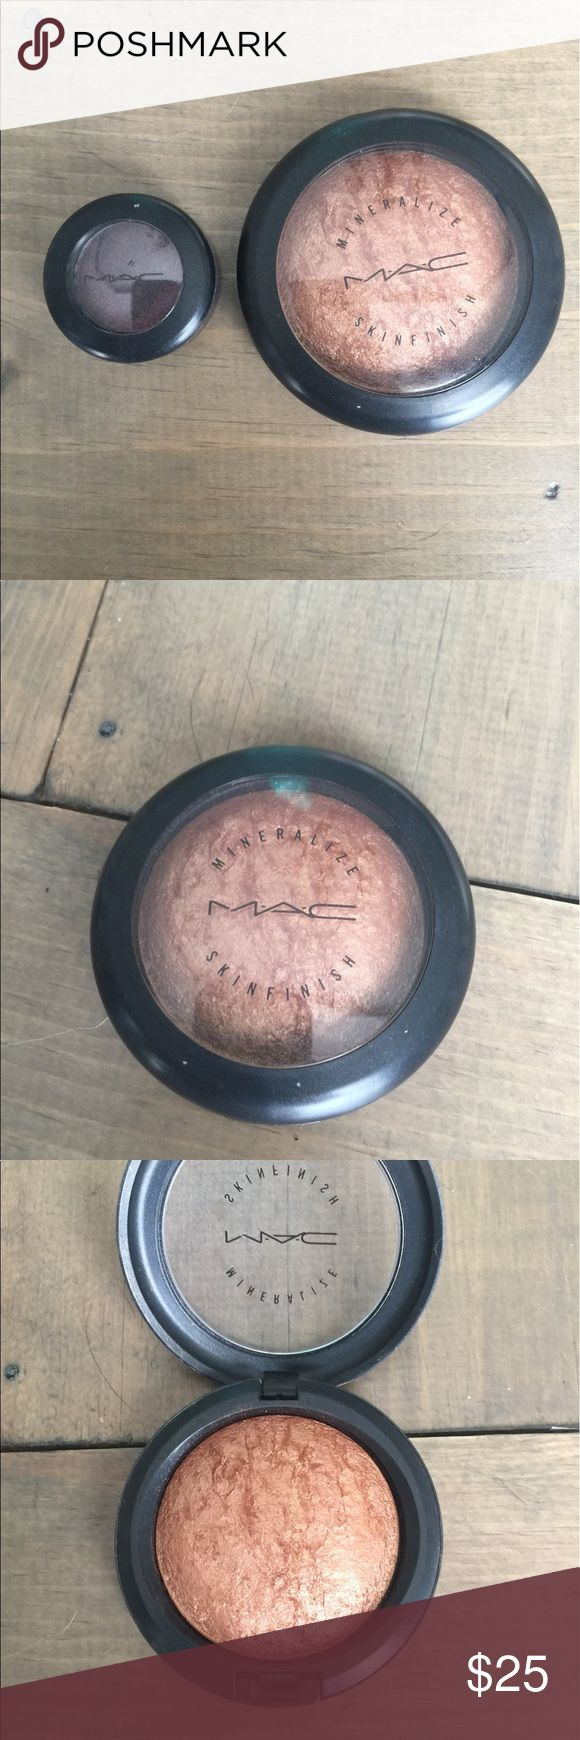 MAC mineralize skin finish Gold Deposit Mac mineralize skin finish in the shade gold deposit and Mac eyeshadow in the shade beauty marked. Both hardly worn. Just wasn't my shade. 100% authentic! MAC Cosmetics Makeup Bronzer